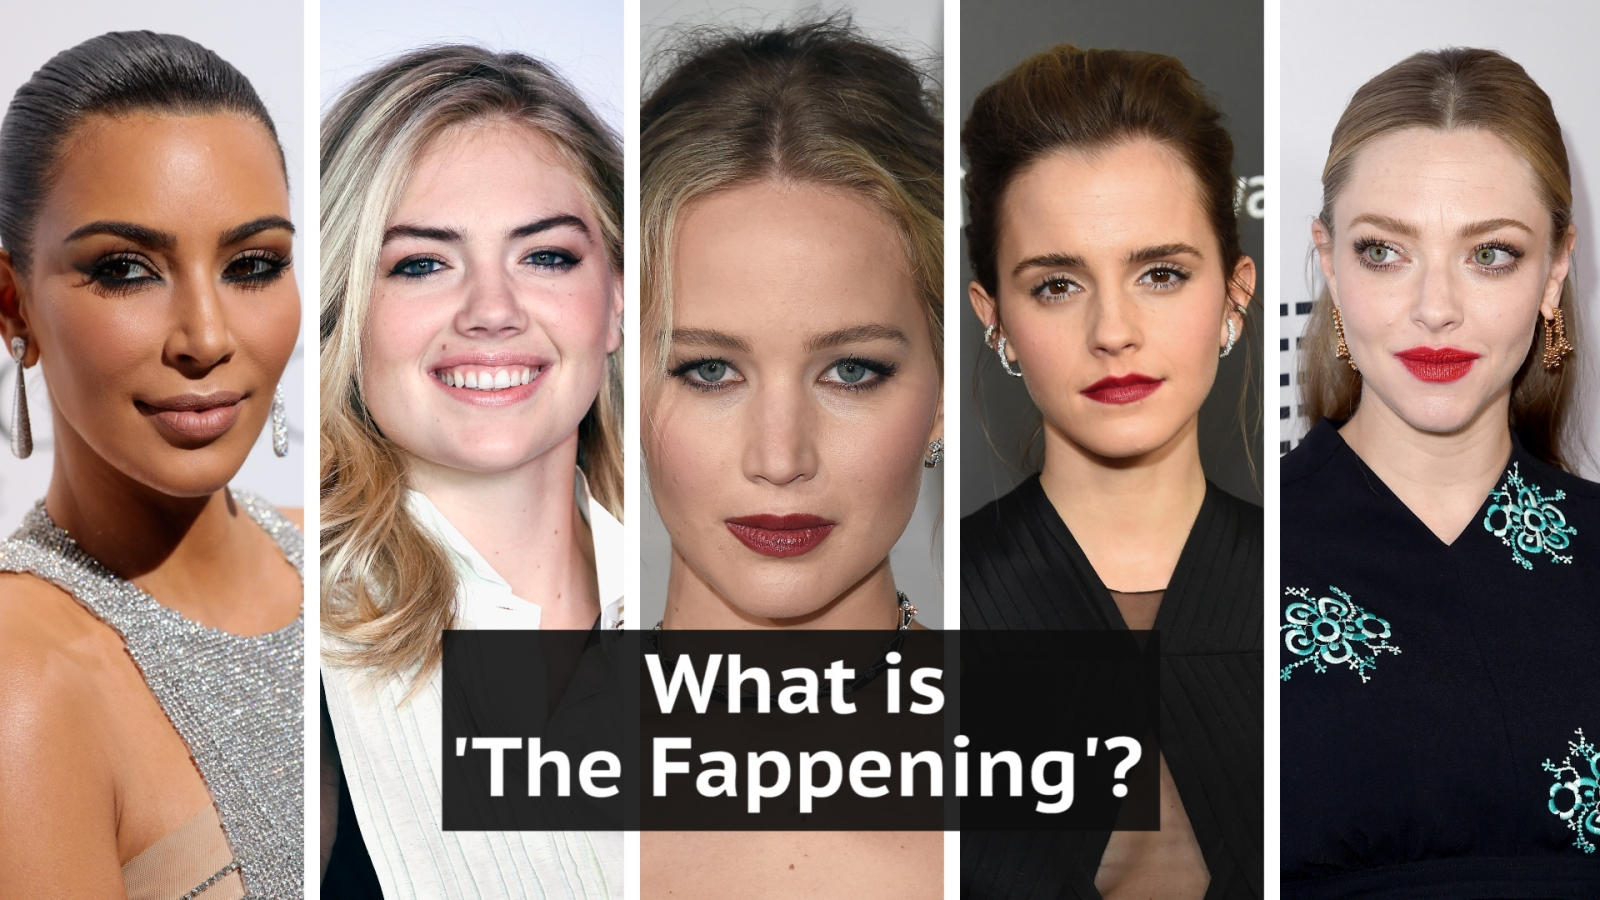 What is the Fappening?